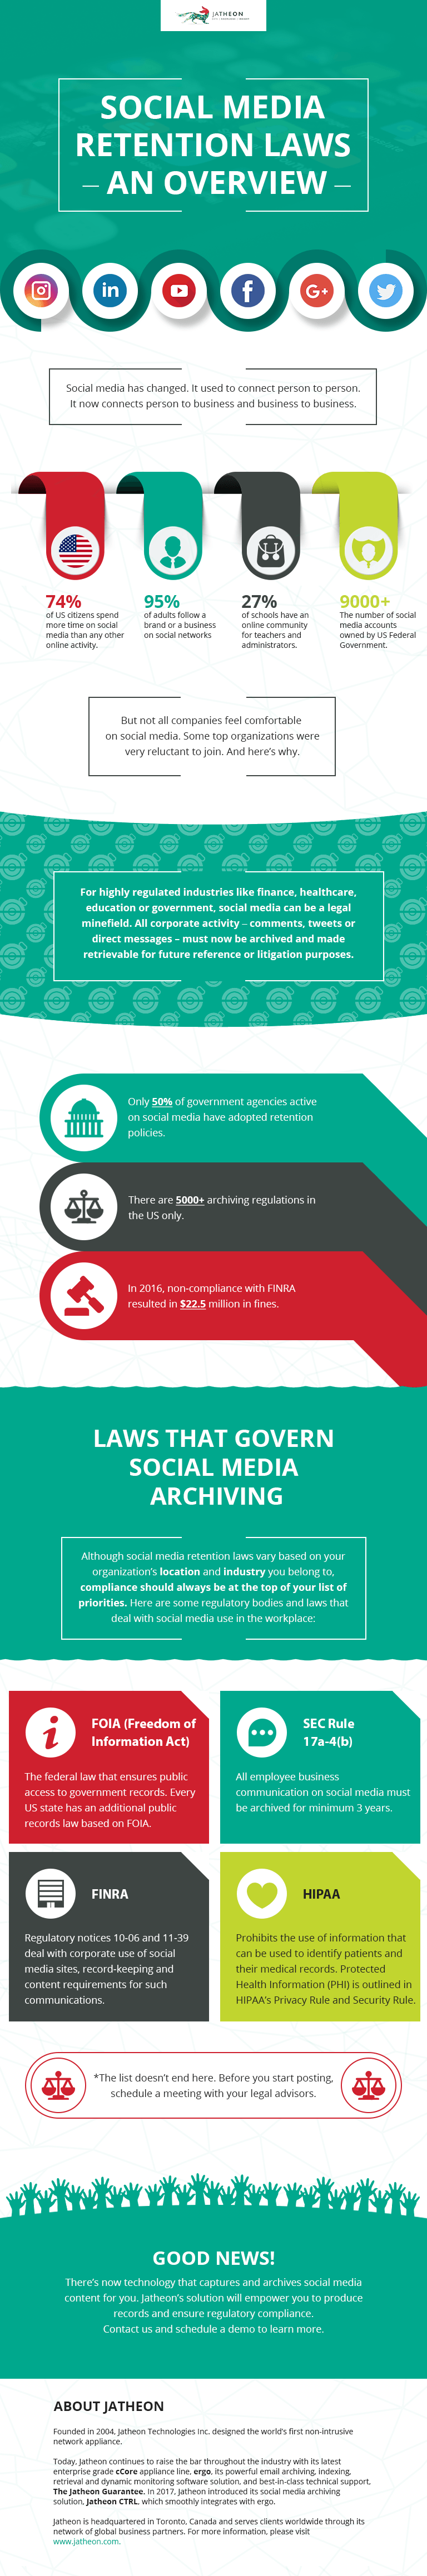 jatheon infographic - social media retention laws v2